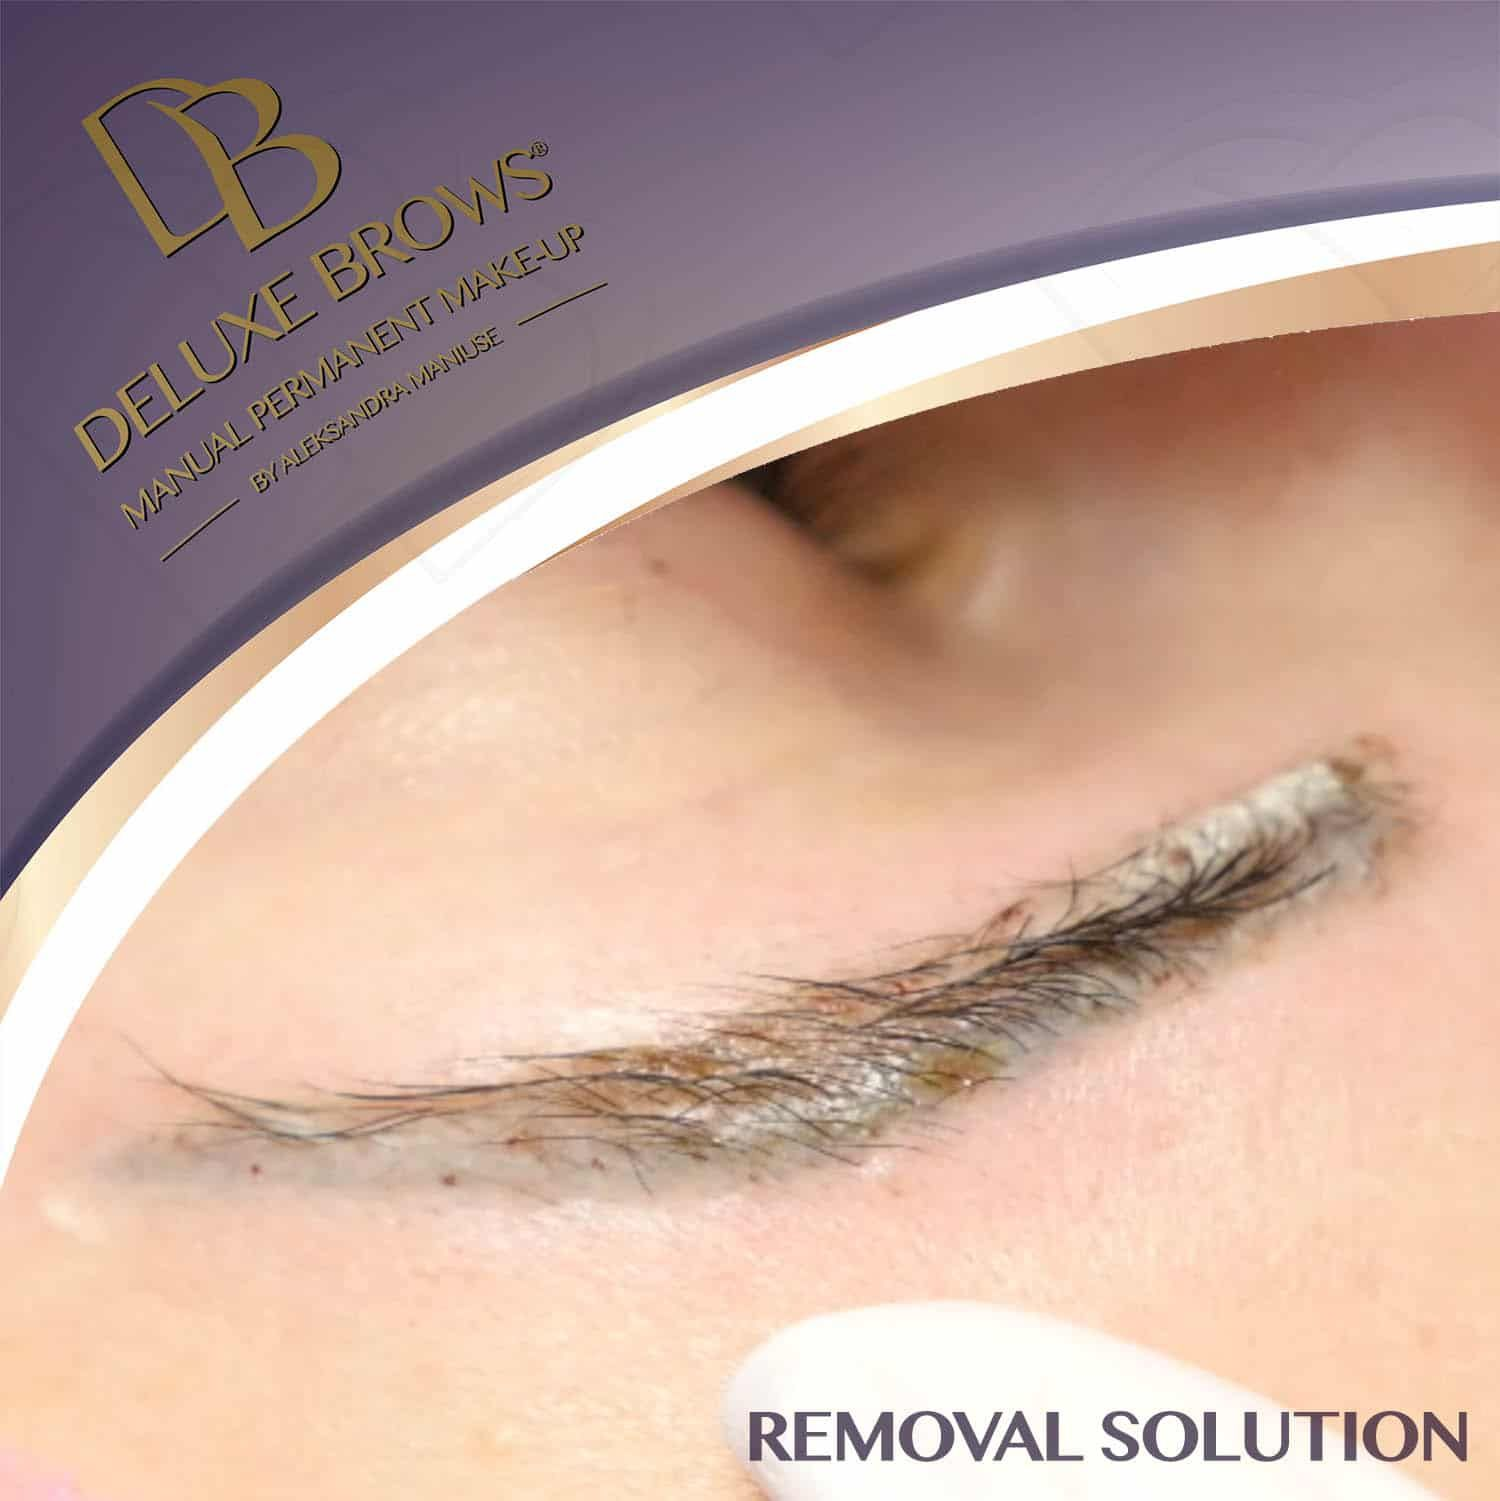 Tattoo Removal Cream That Works